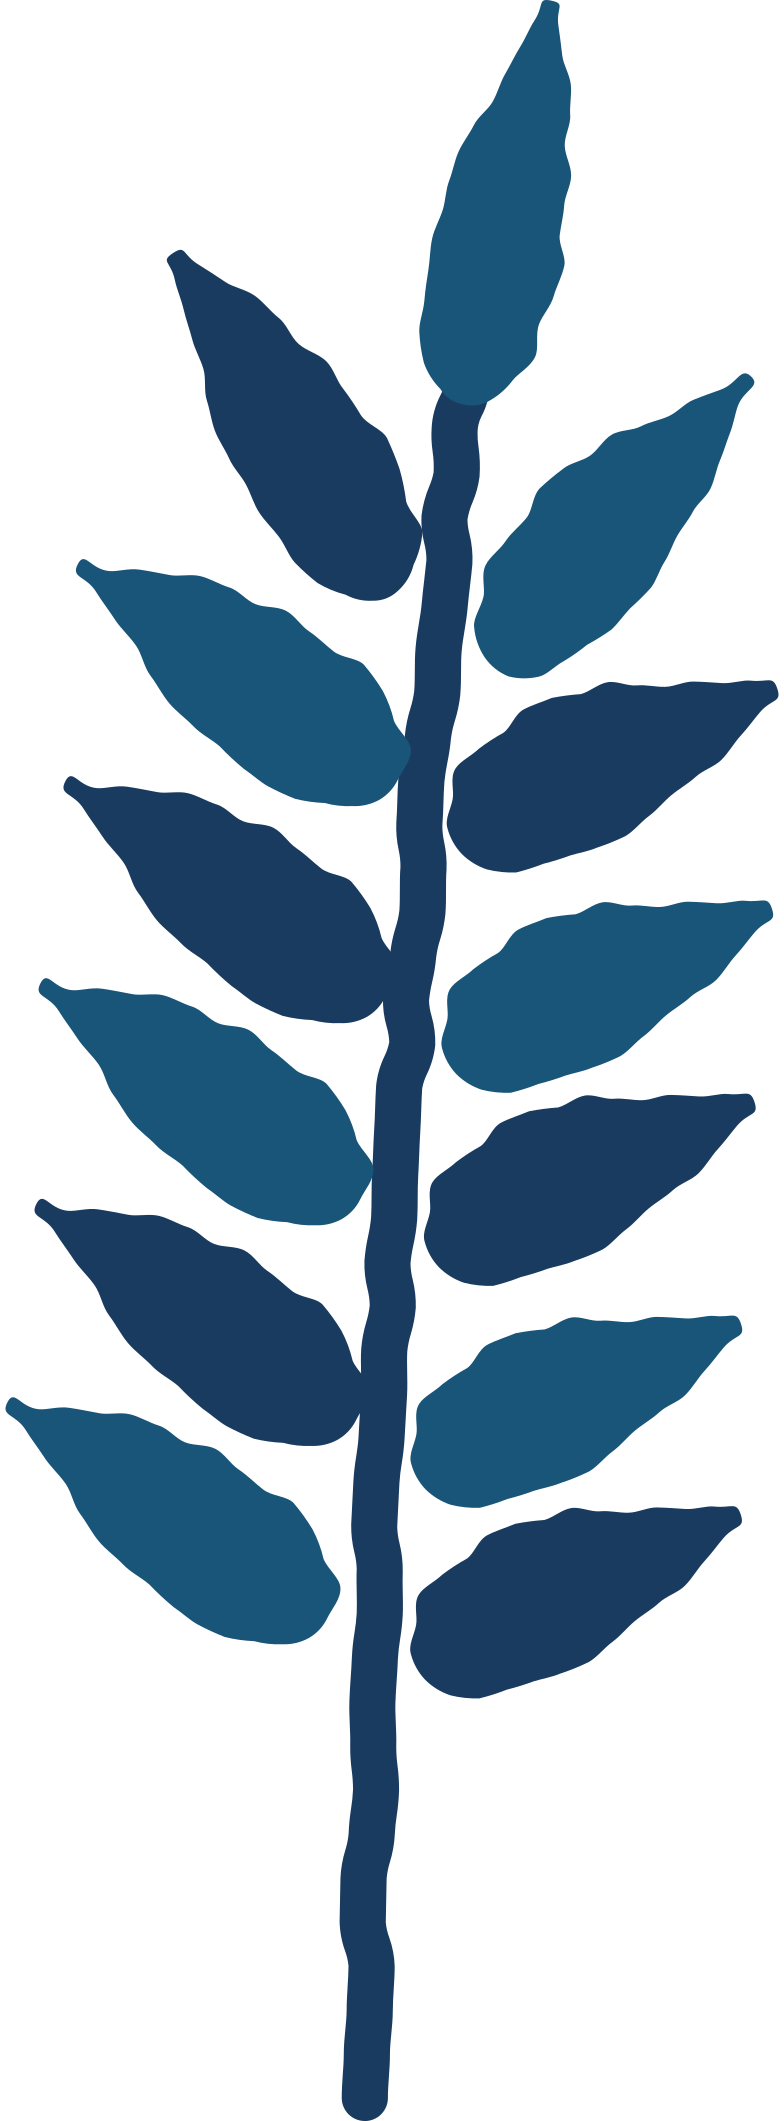 style rowan leaf Vector images in PNG and SVG | Icons8 Illustrations